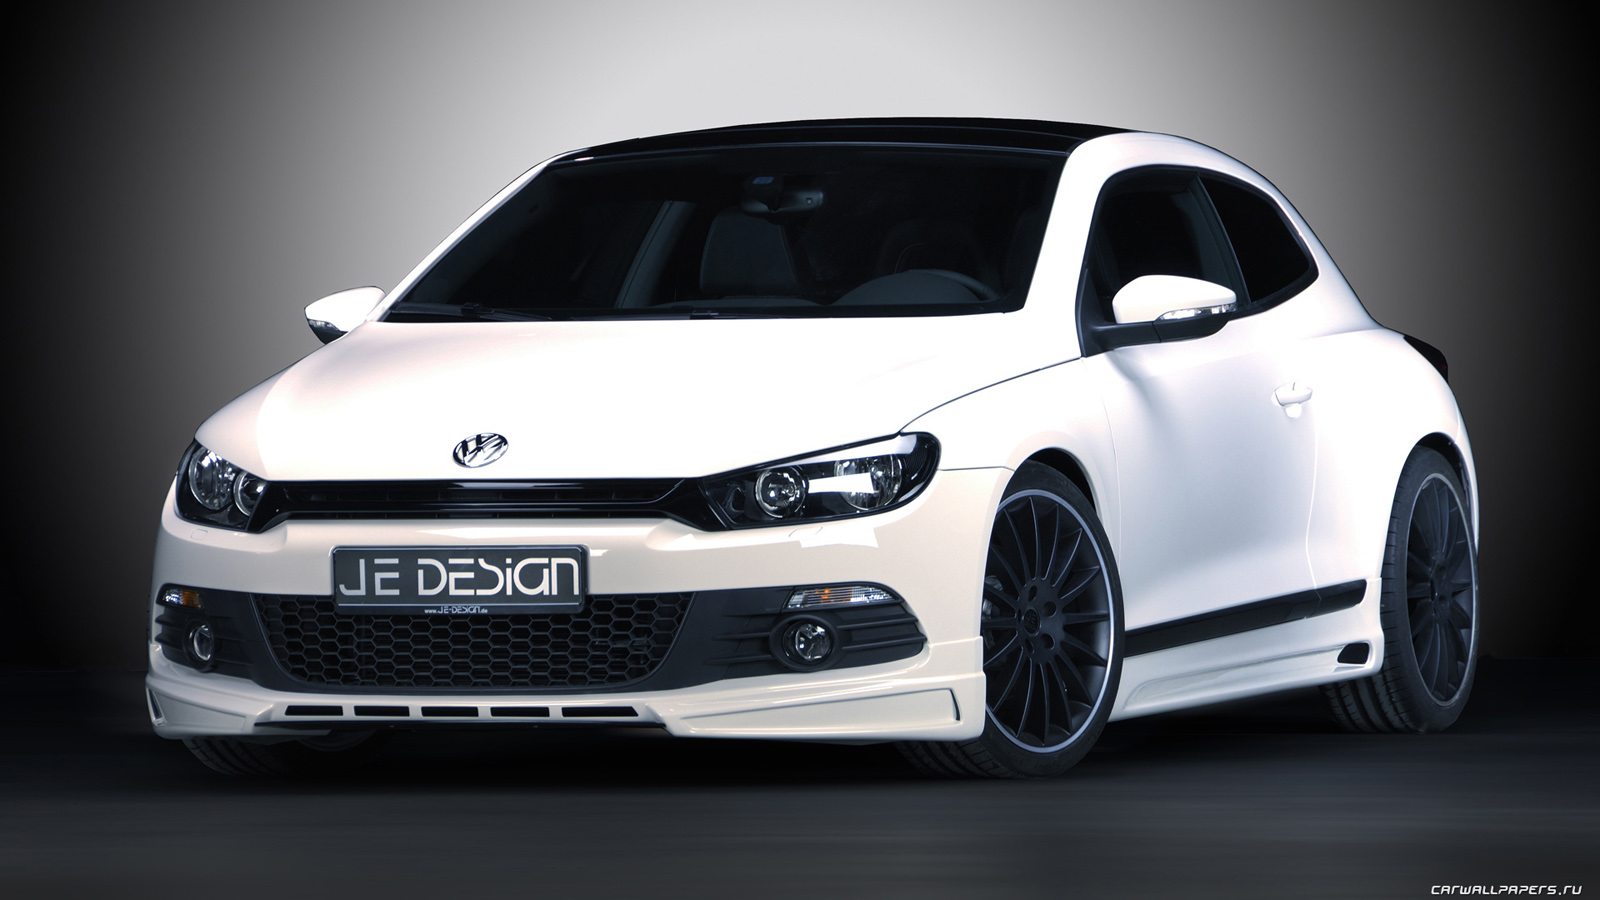 Tuning Car Je Design Volkswagen Scirocco 1600x900 HD Wallpaper